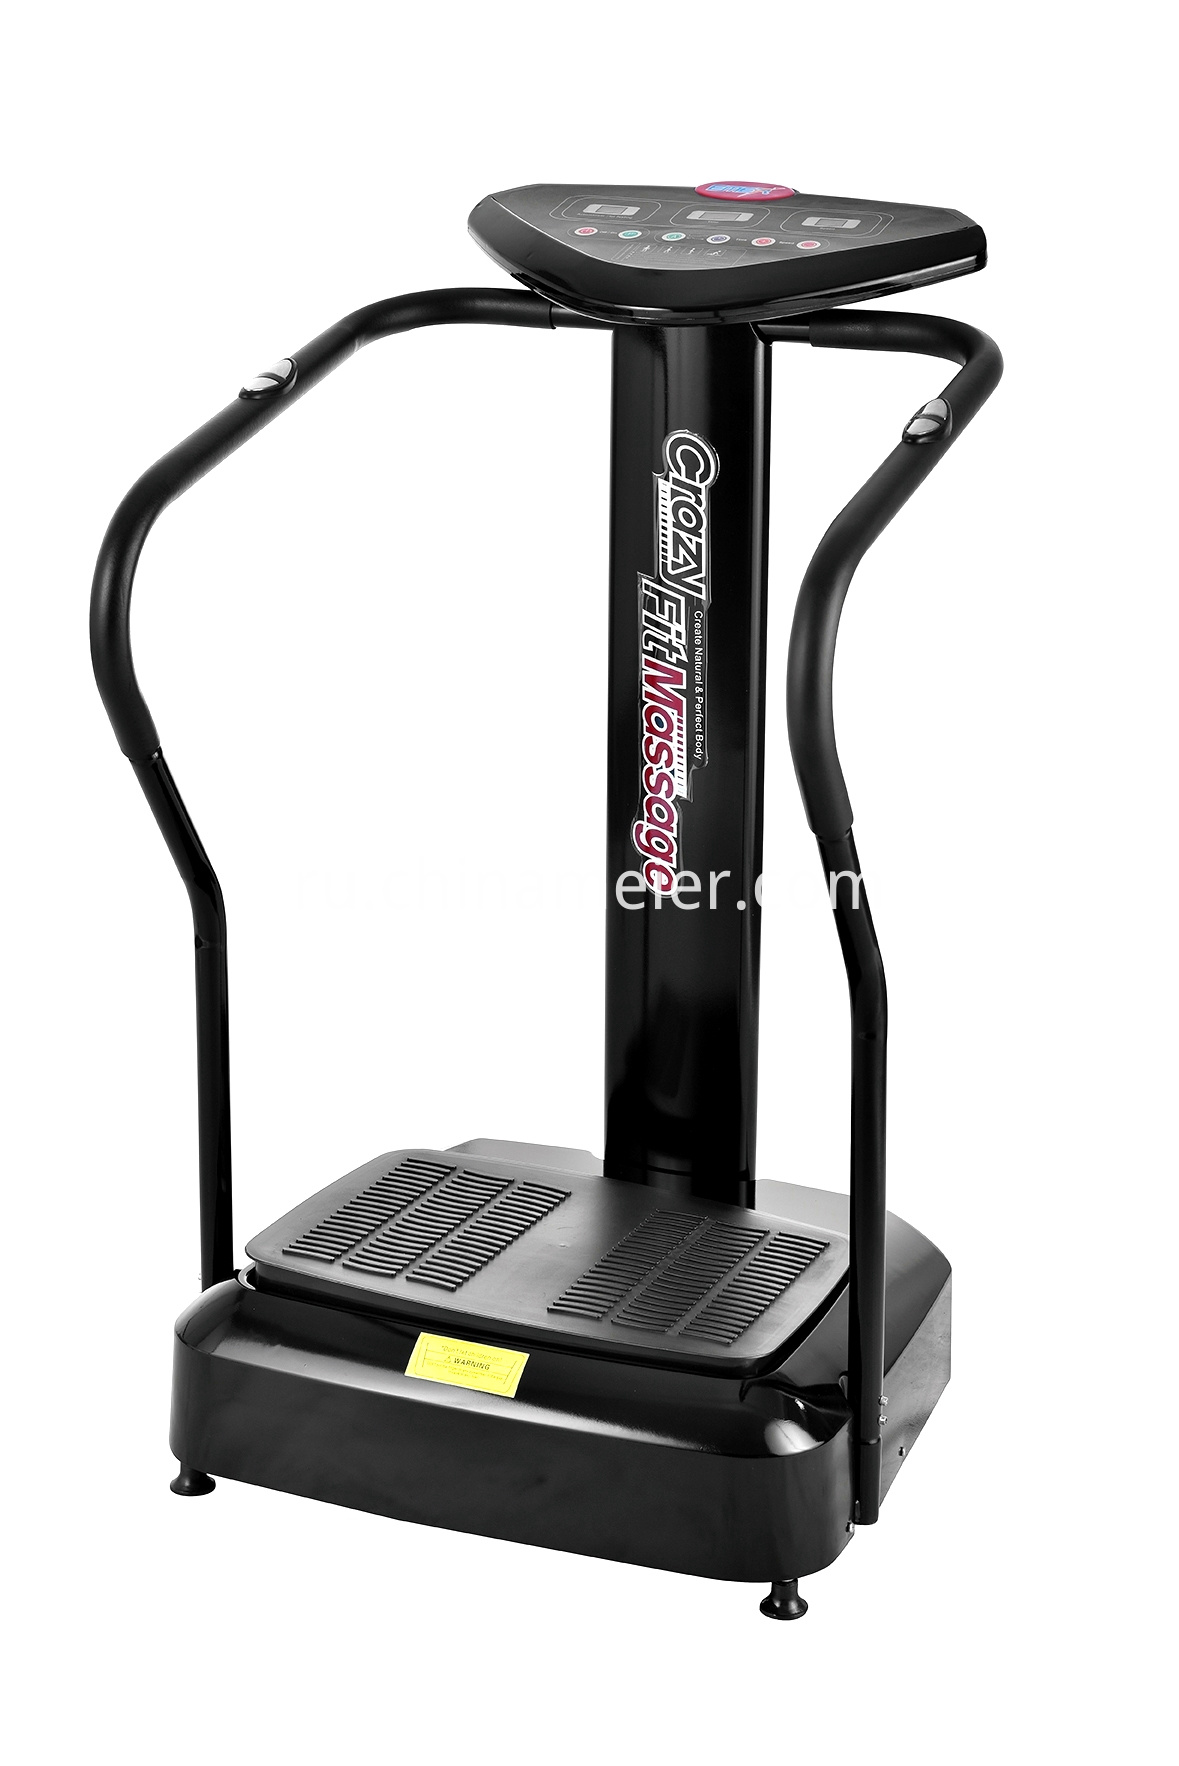 New Designed Vibrating Exercise Machine